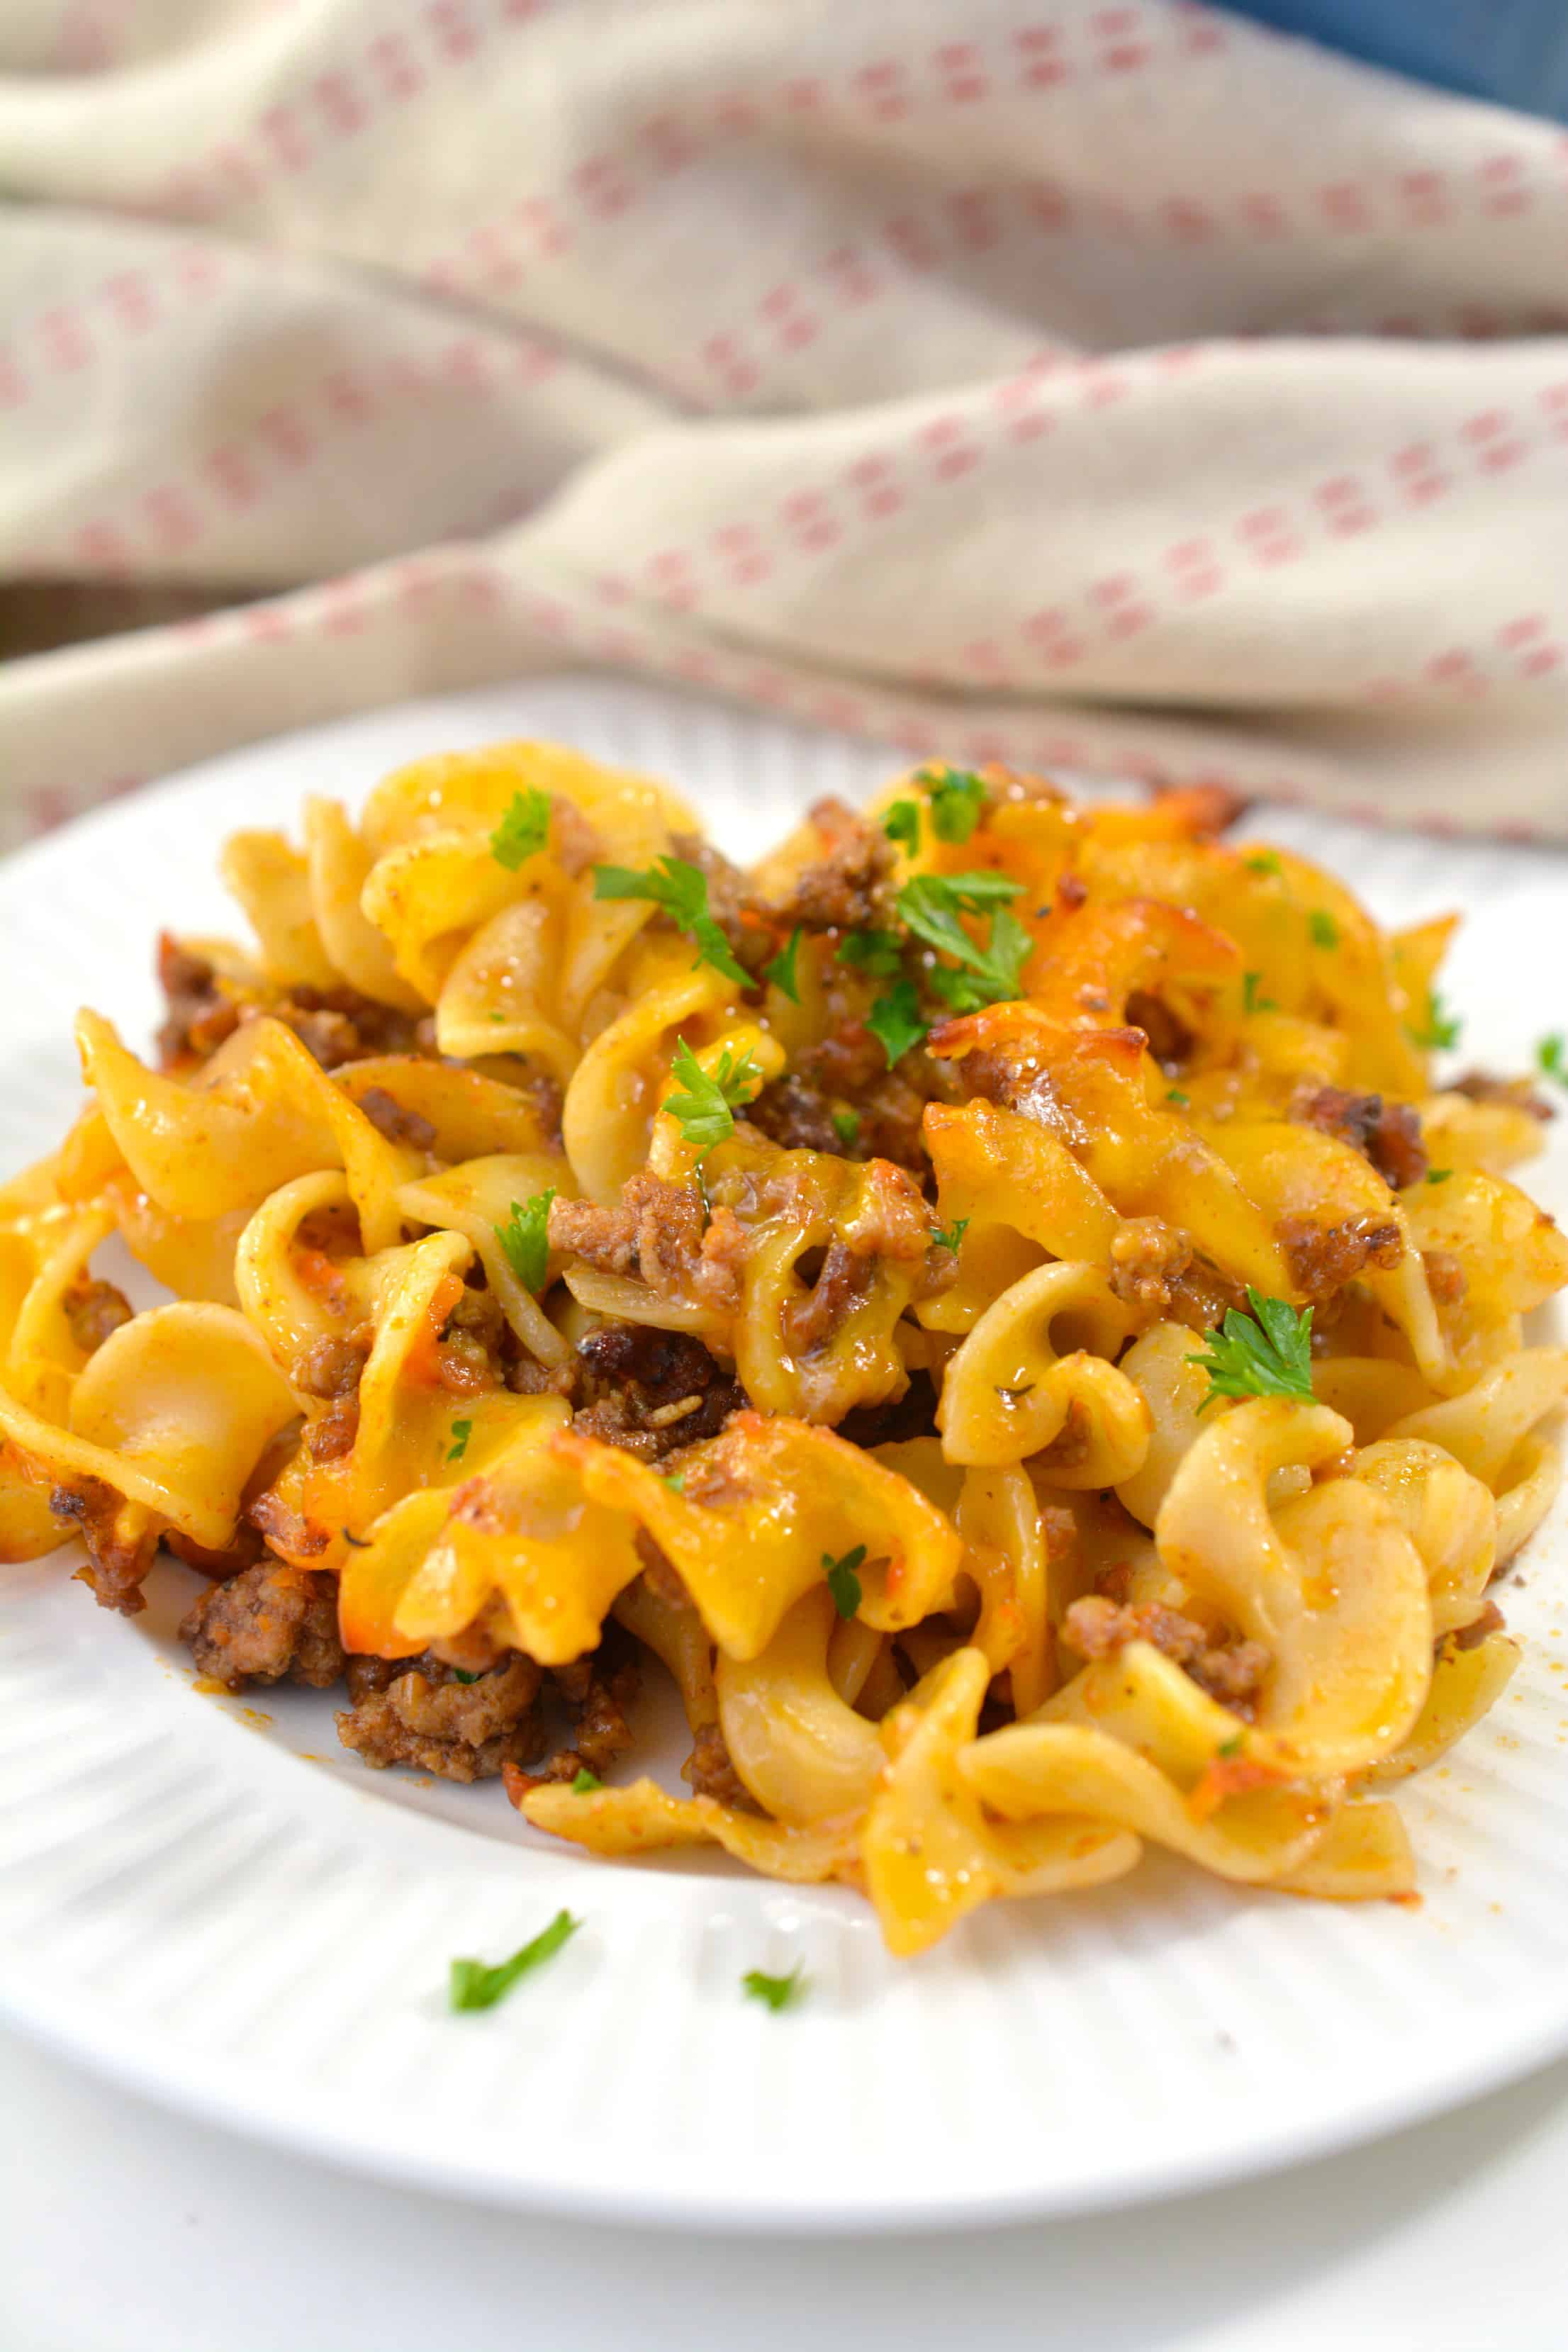 Beef Noodle Casserole Recipe on a white plate